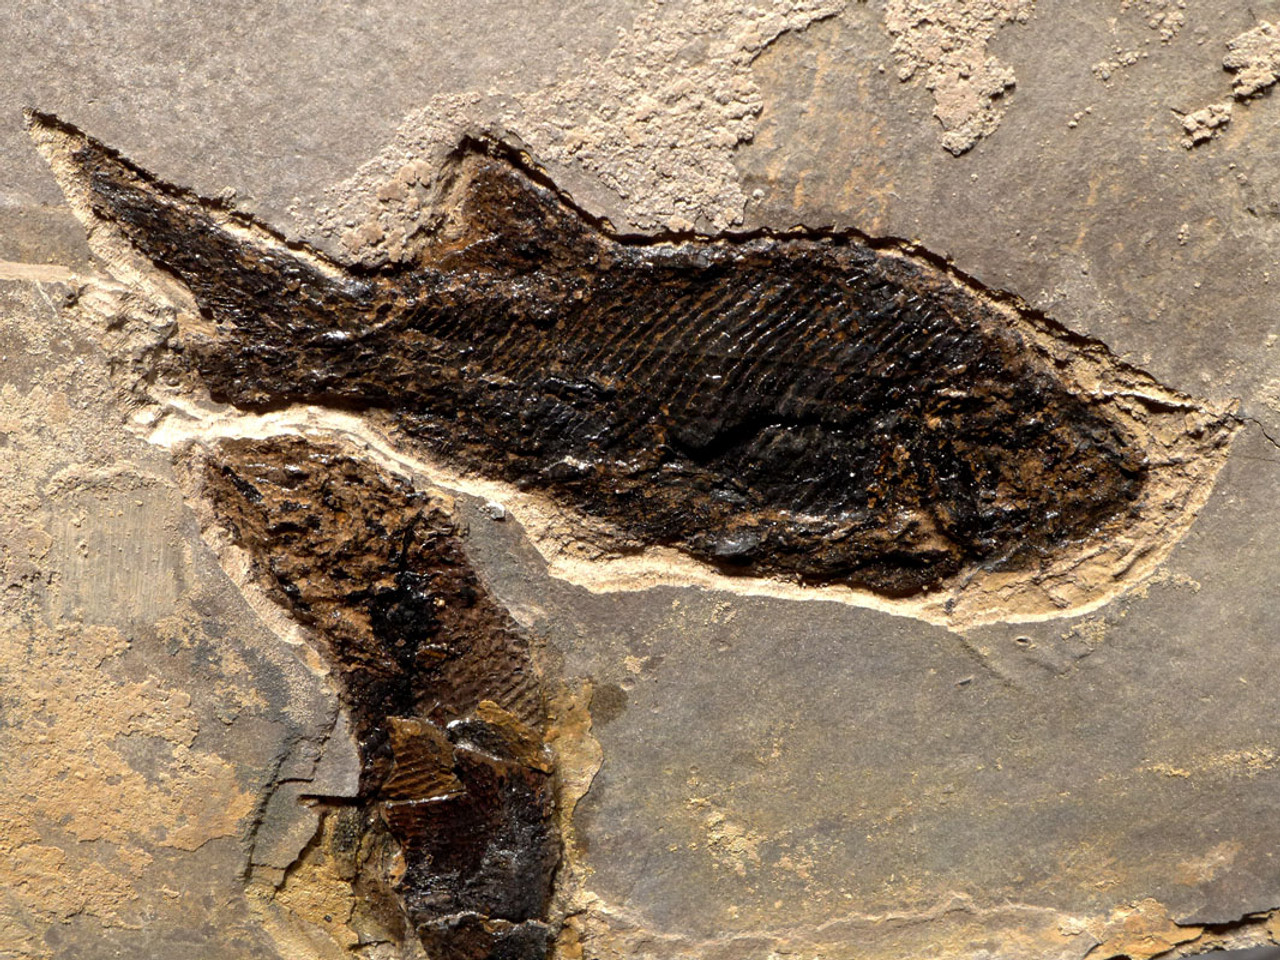 MULTIPLE PARAMBLYPTERUS PERMIAN FISH FOSSIL FROM BEFORE THE DINOSAURS *F145